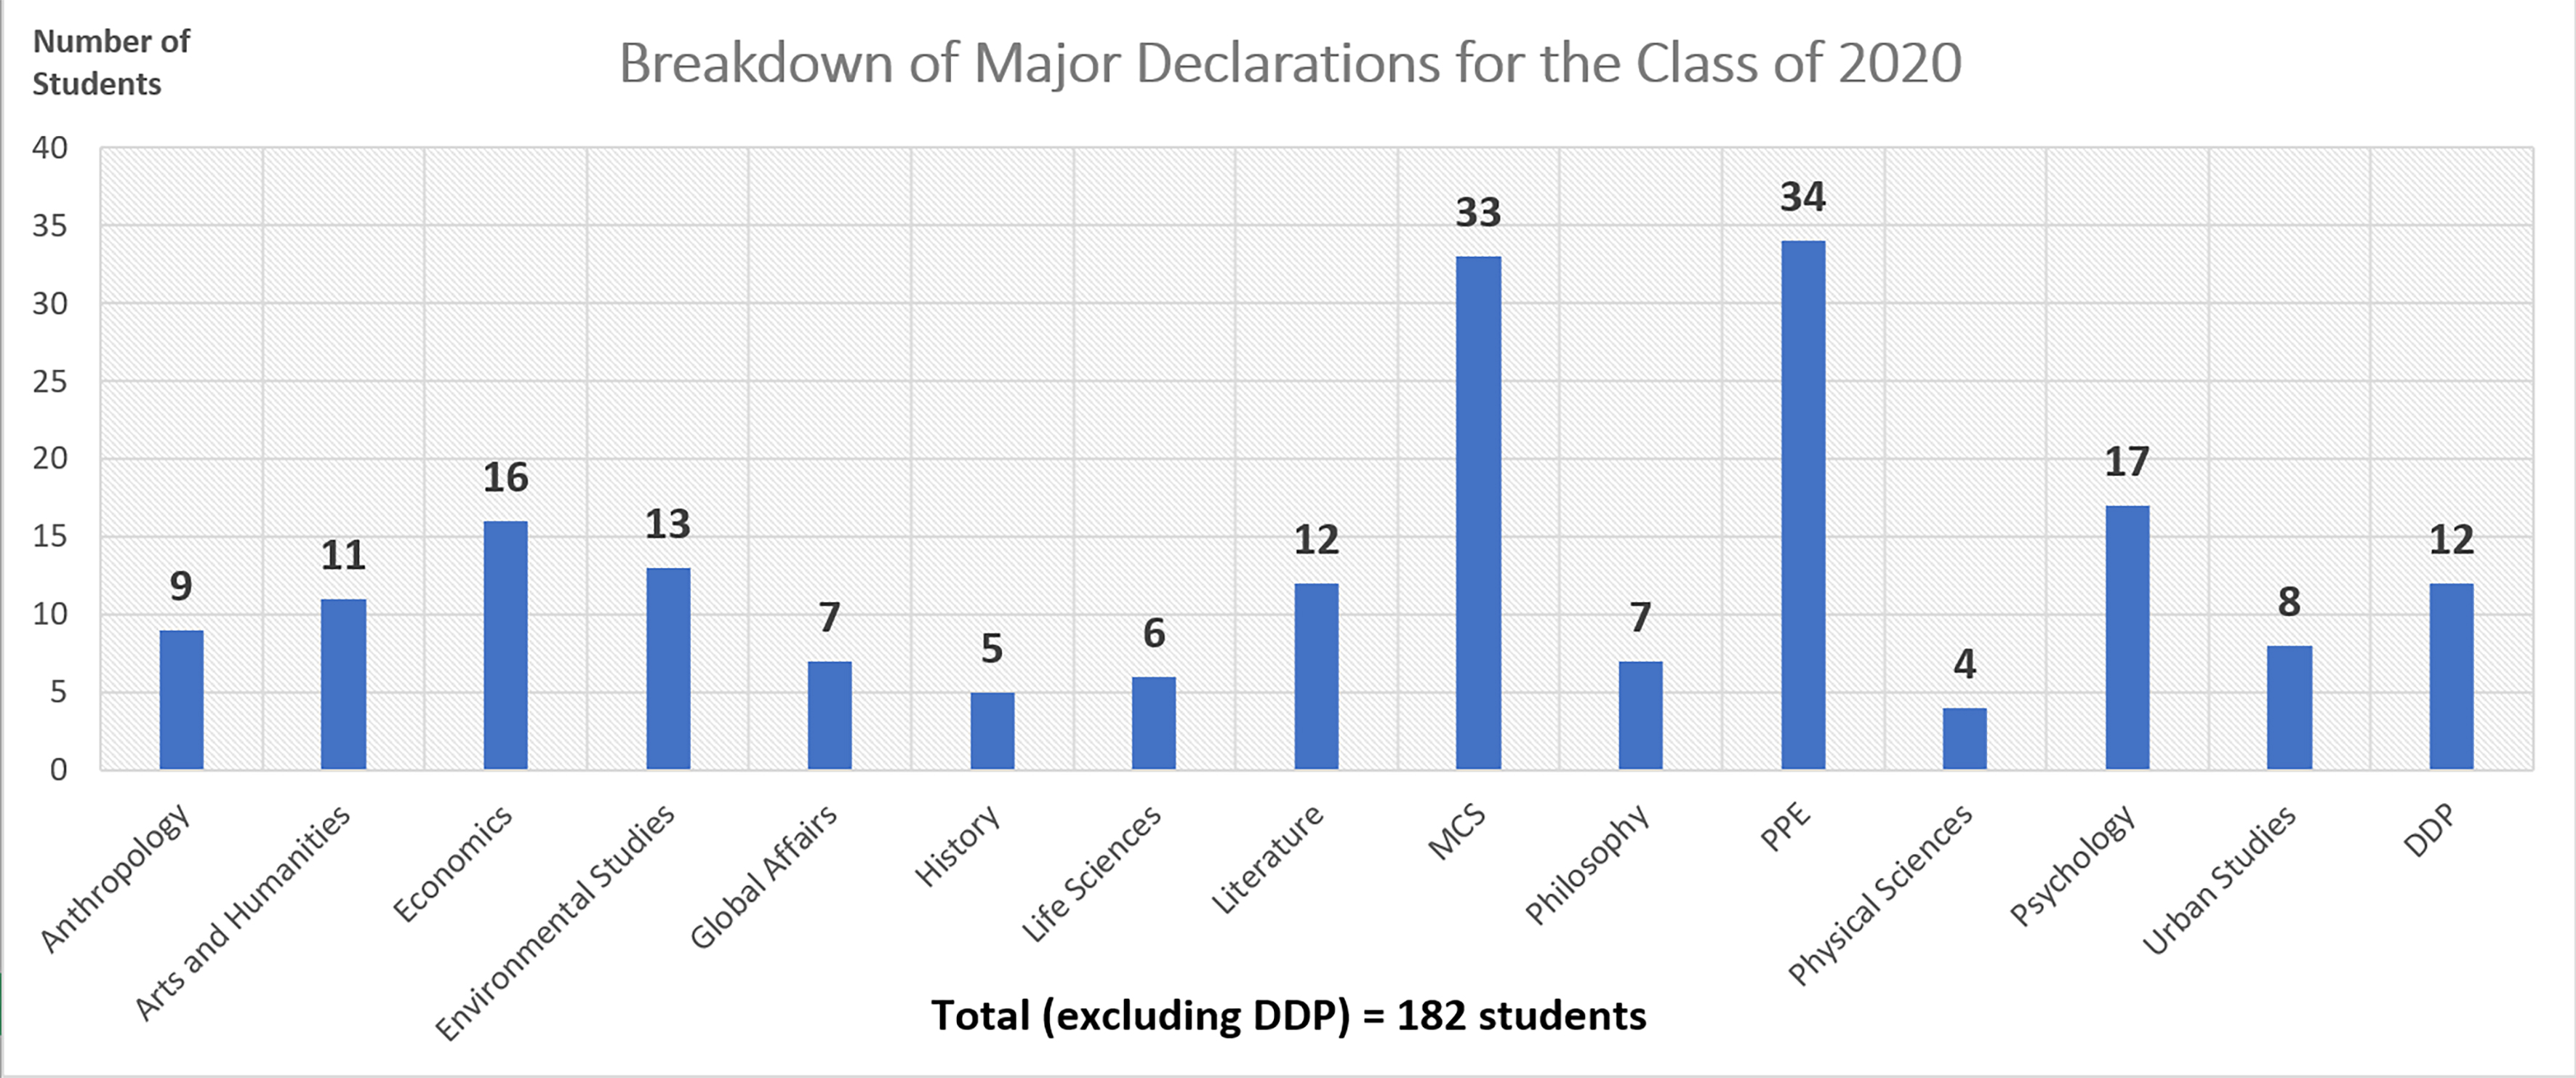 Highlights From the Major Declaration Statistics for the Class of 2020